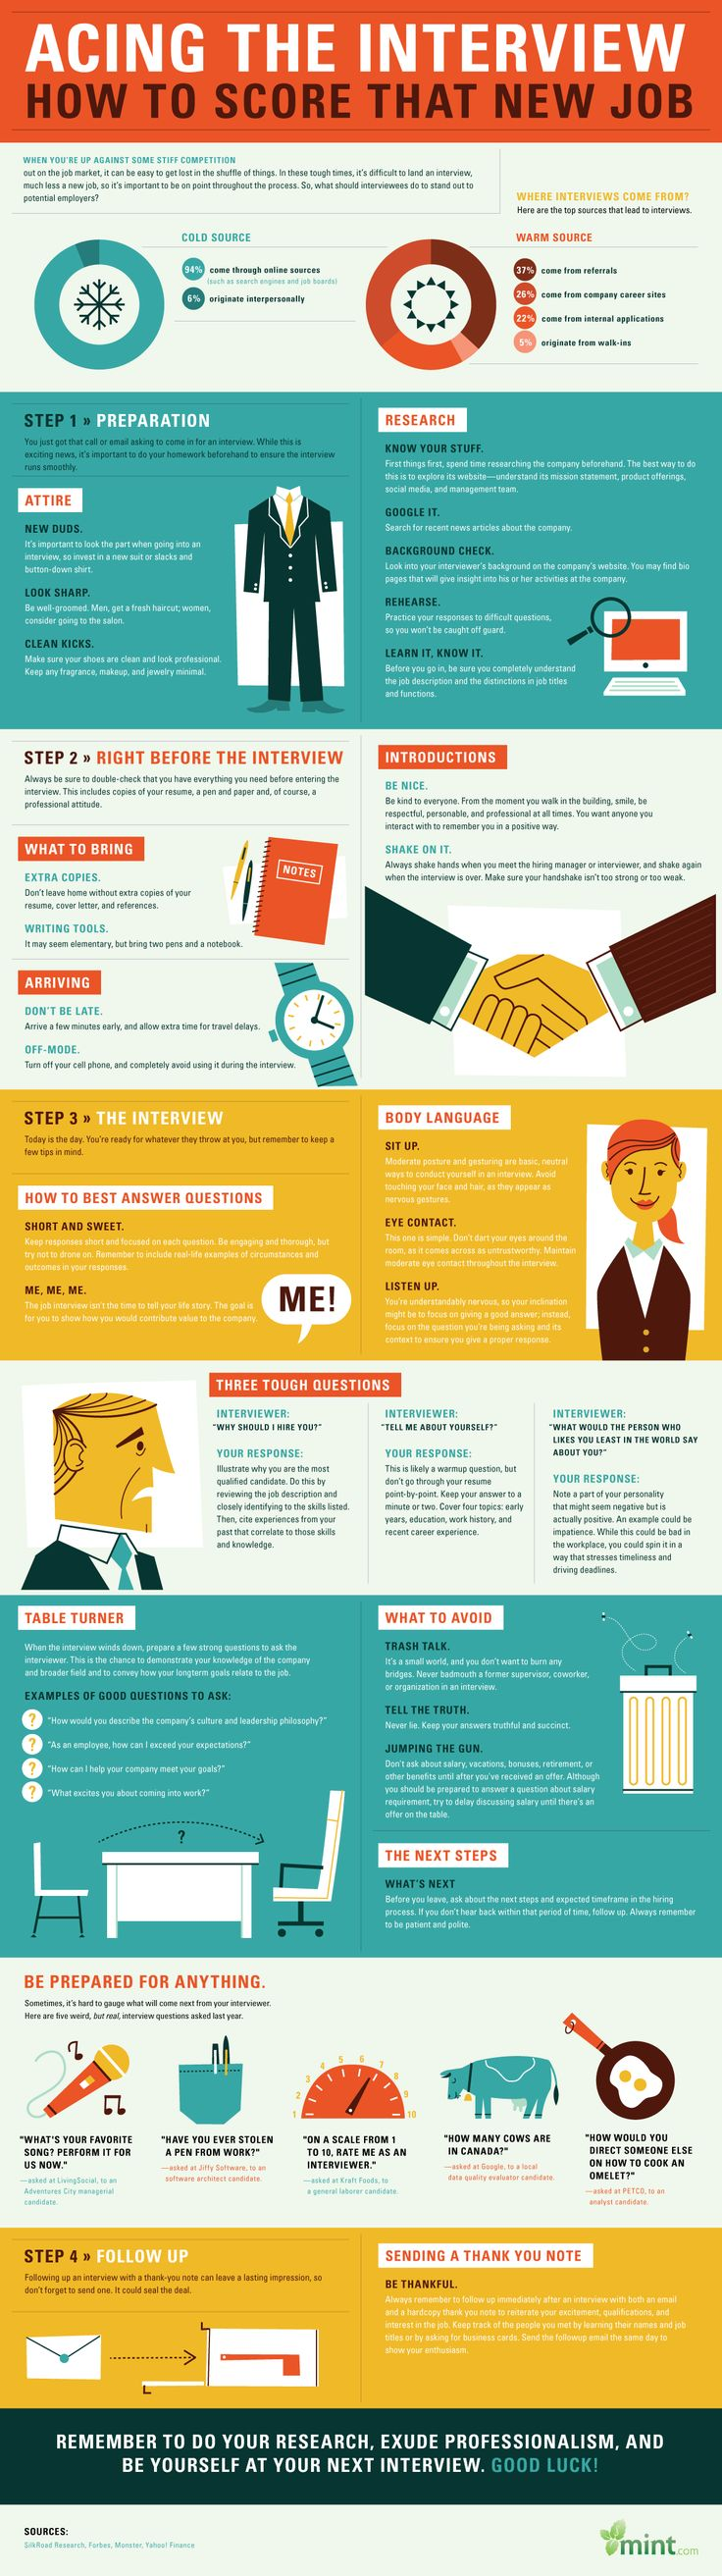 How To Ace The Interview (And Get The Job) [Infographic]. Re-pinned by #Europass